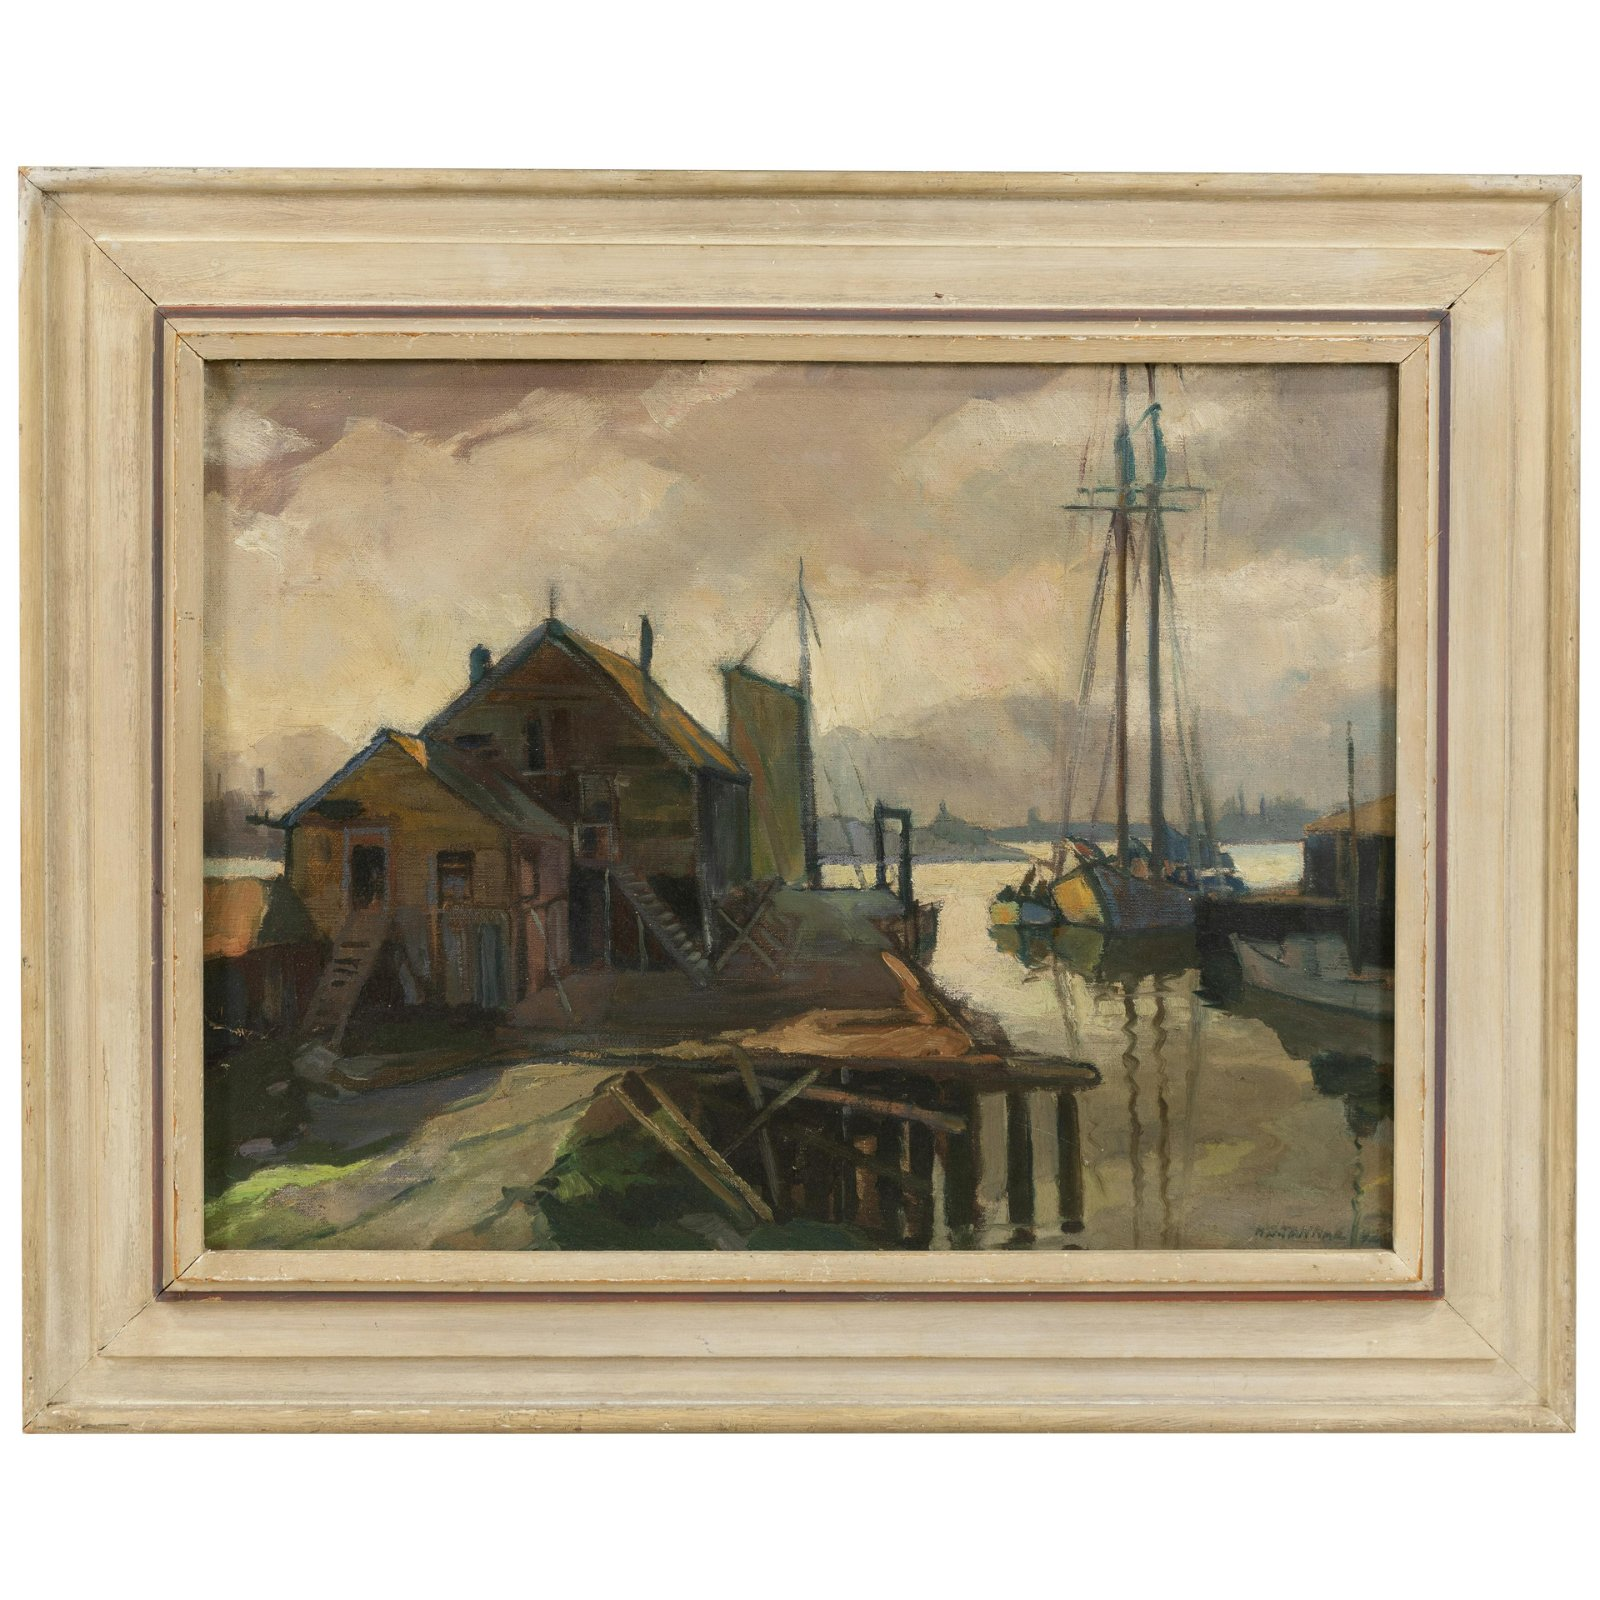 Harold D. Tannar - Harbor Scene - Oil on Canvas